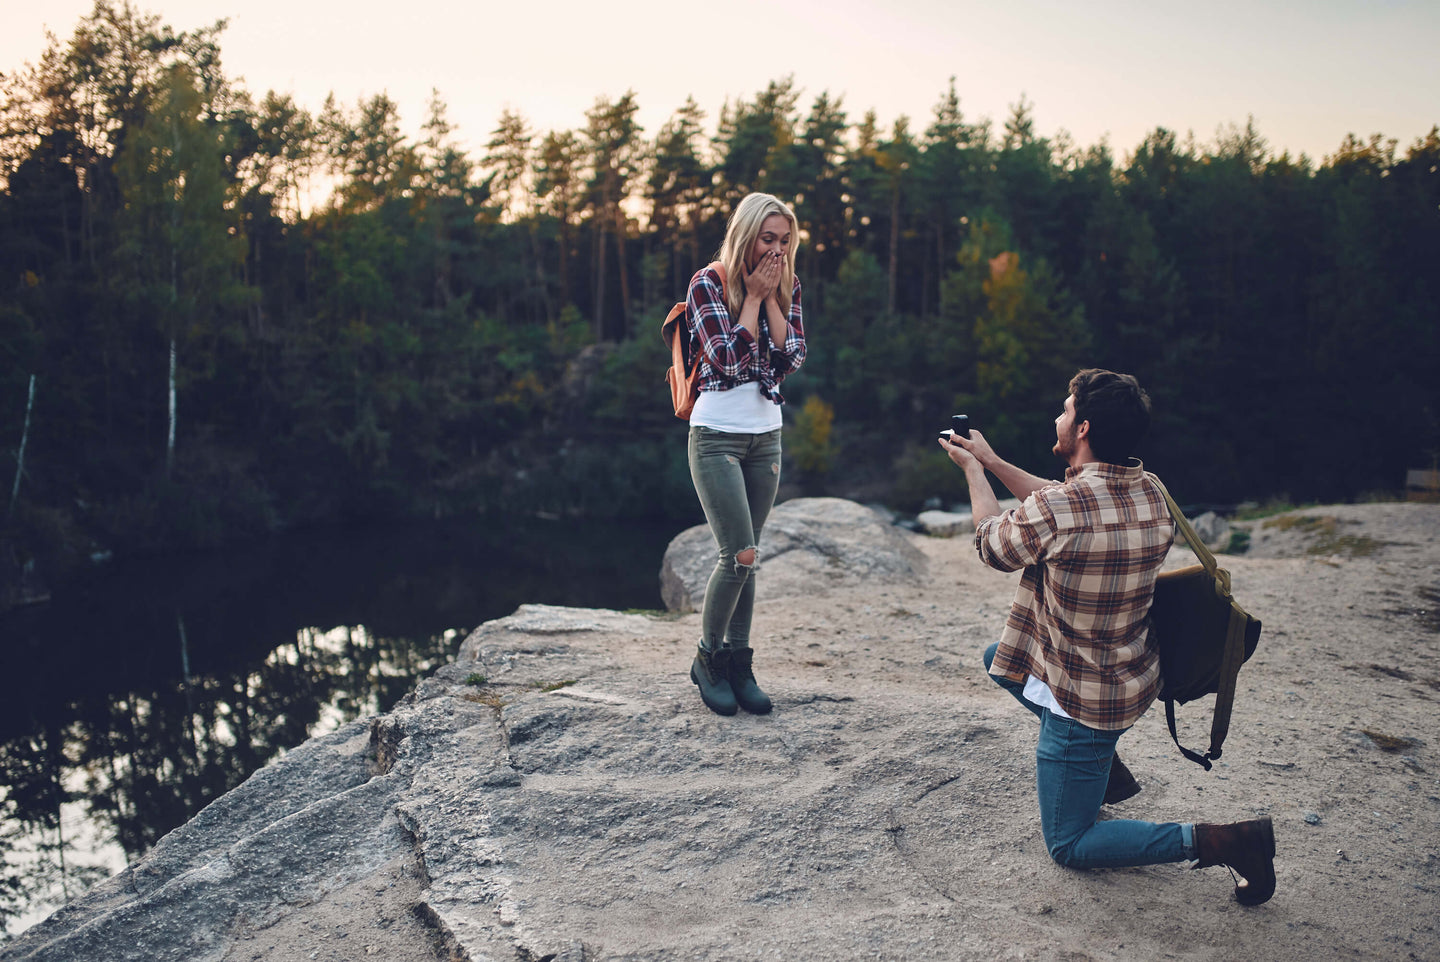 Looking to make an epic proposal?